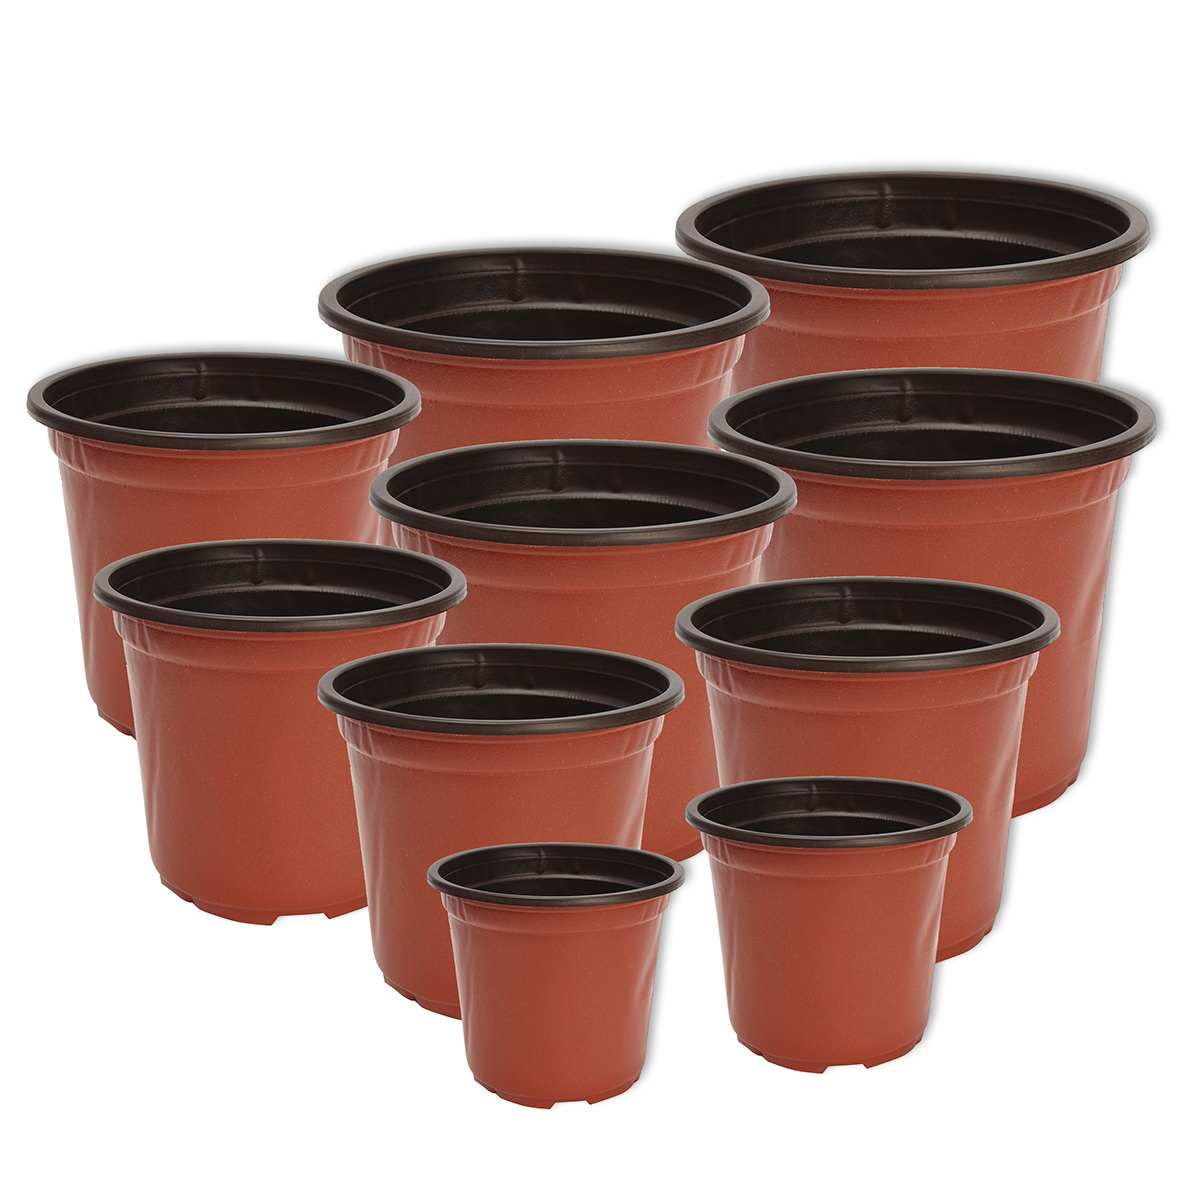 100Pcs/Set Flower Pot Plastic Plant Pots Desktop Potted Green Plant Garden Soft Nursery Flowerpot Home Vegetation Tools 12 Size